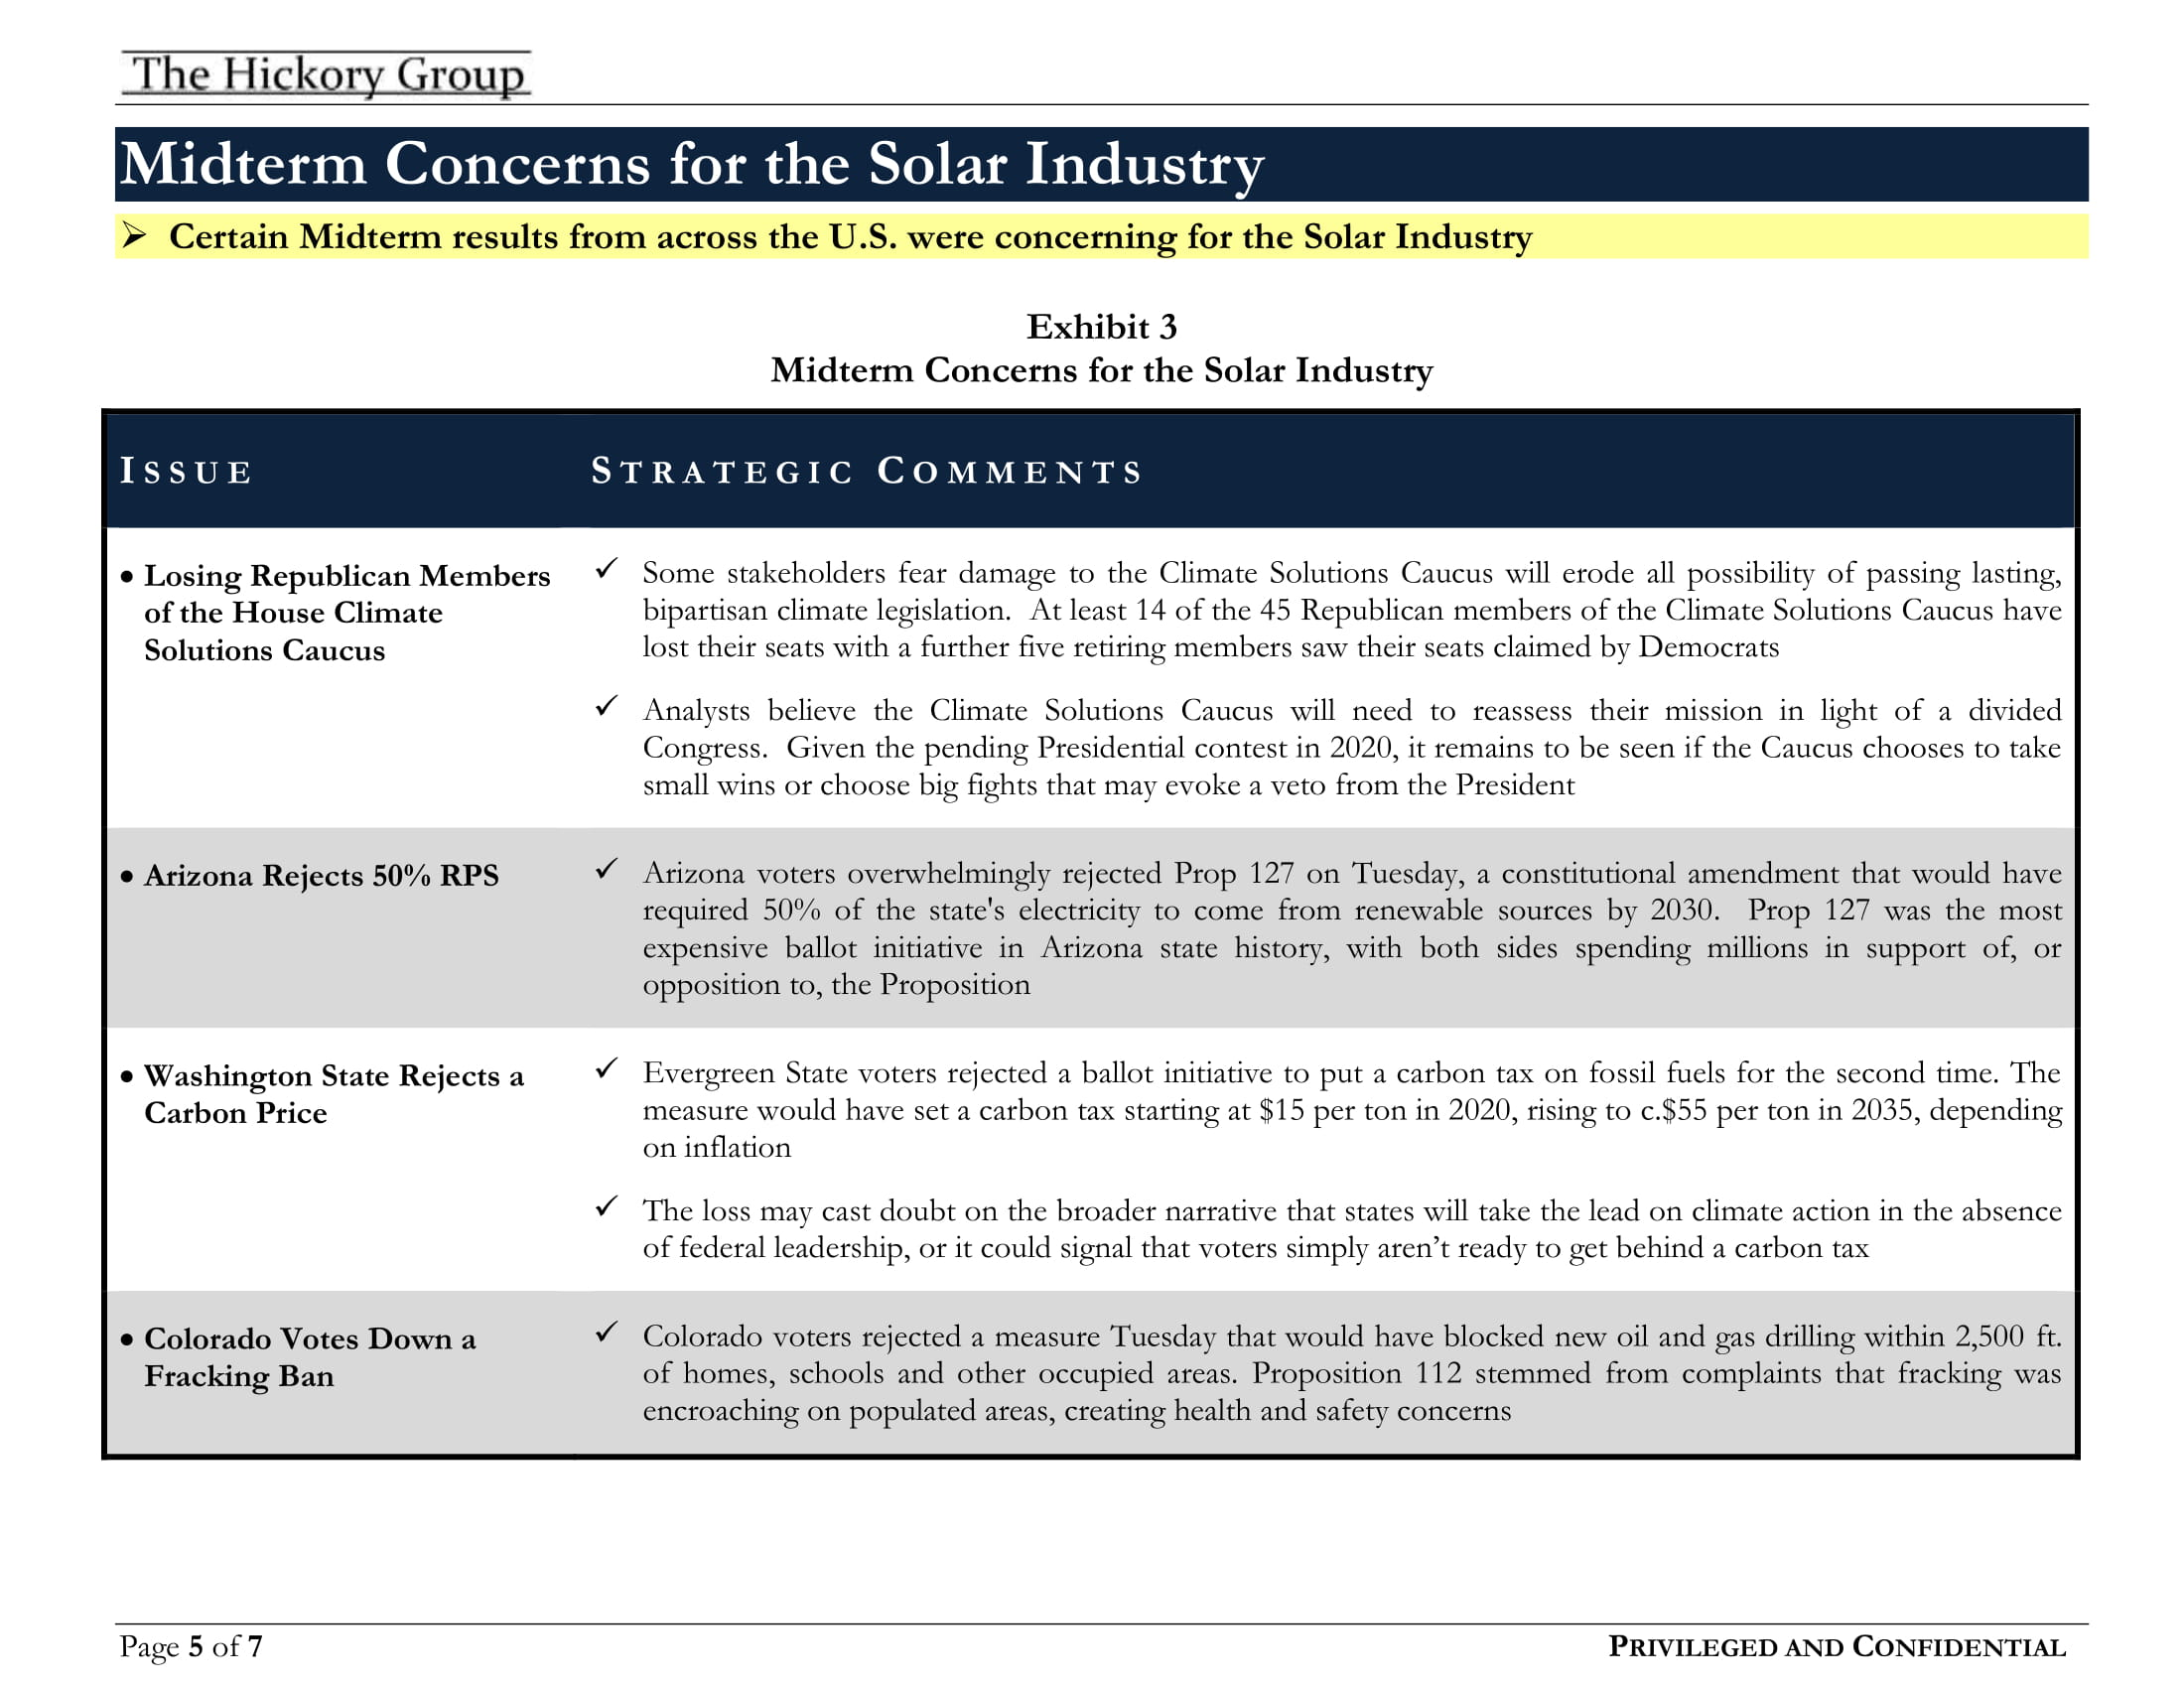 THG Solar Industry_The Midterms & Solar Wins and Losses (9 November 2018) Privileged Confidential(1)[8]-5.jpg